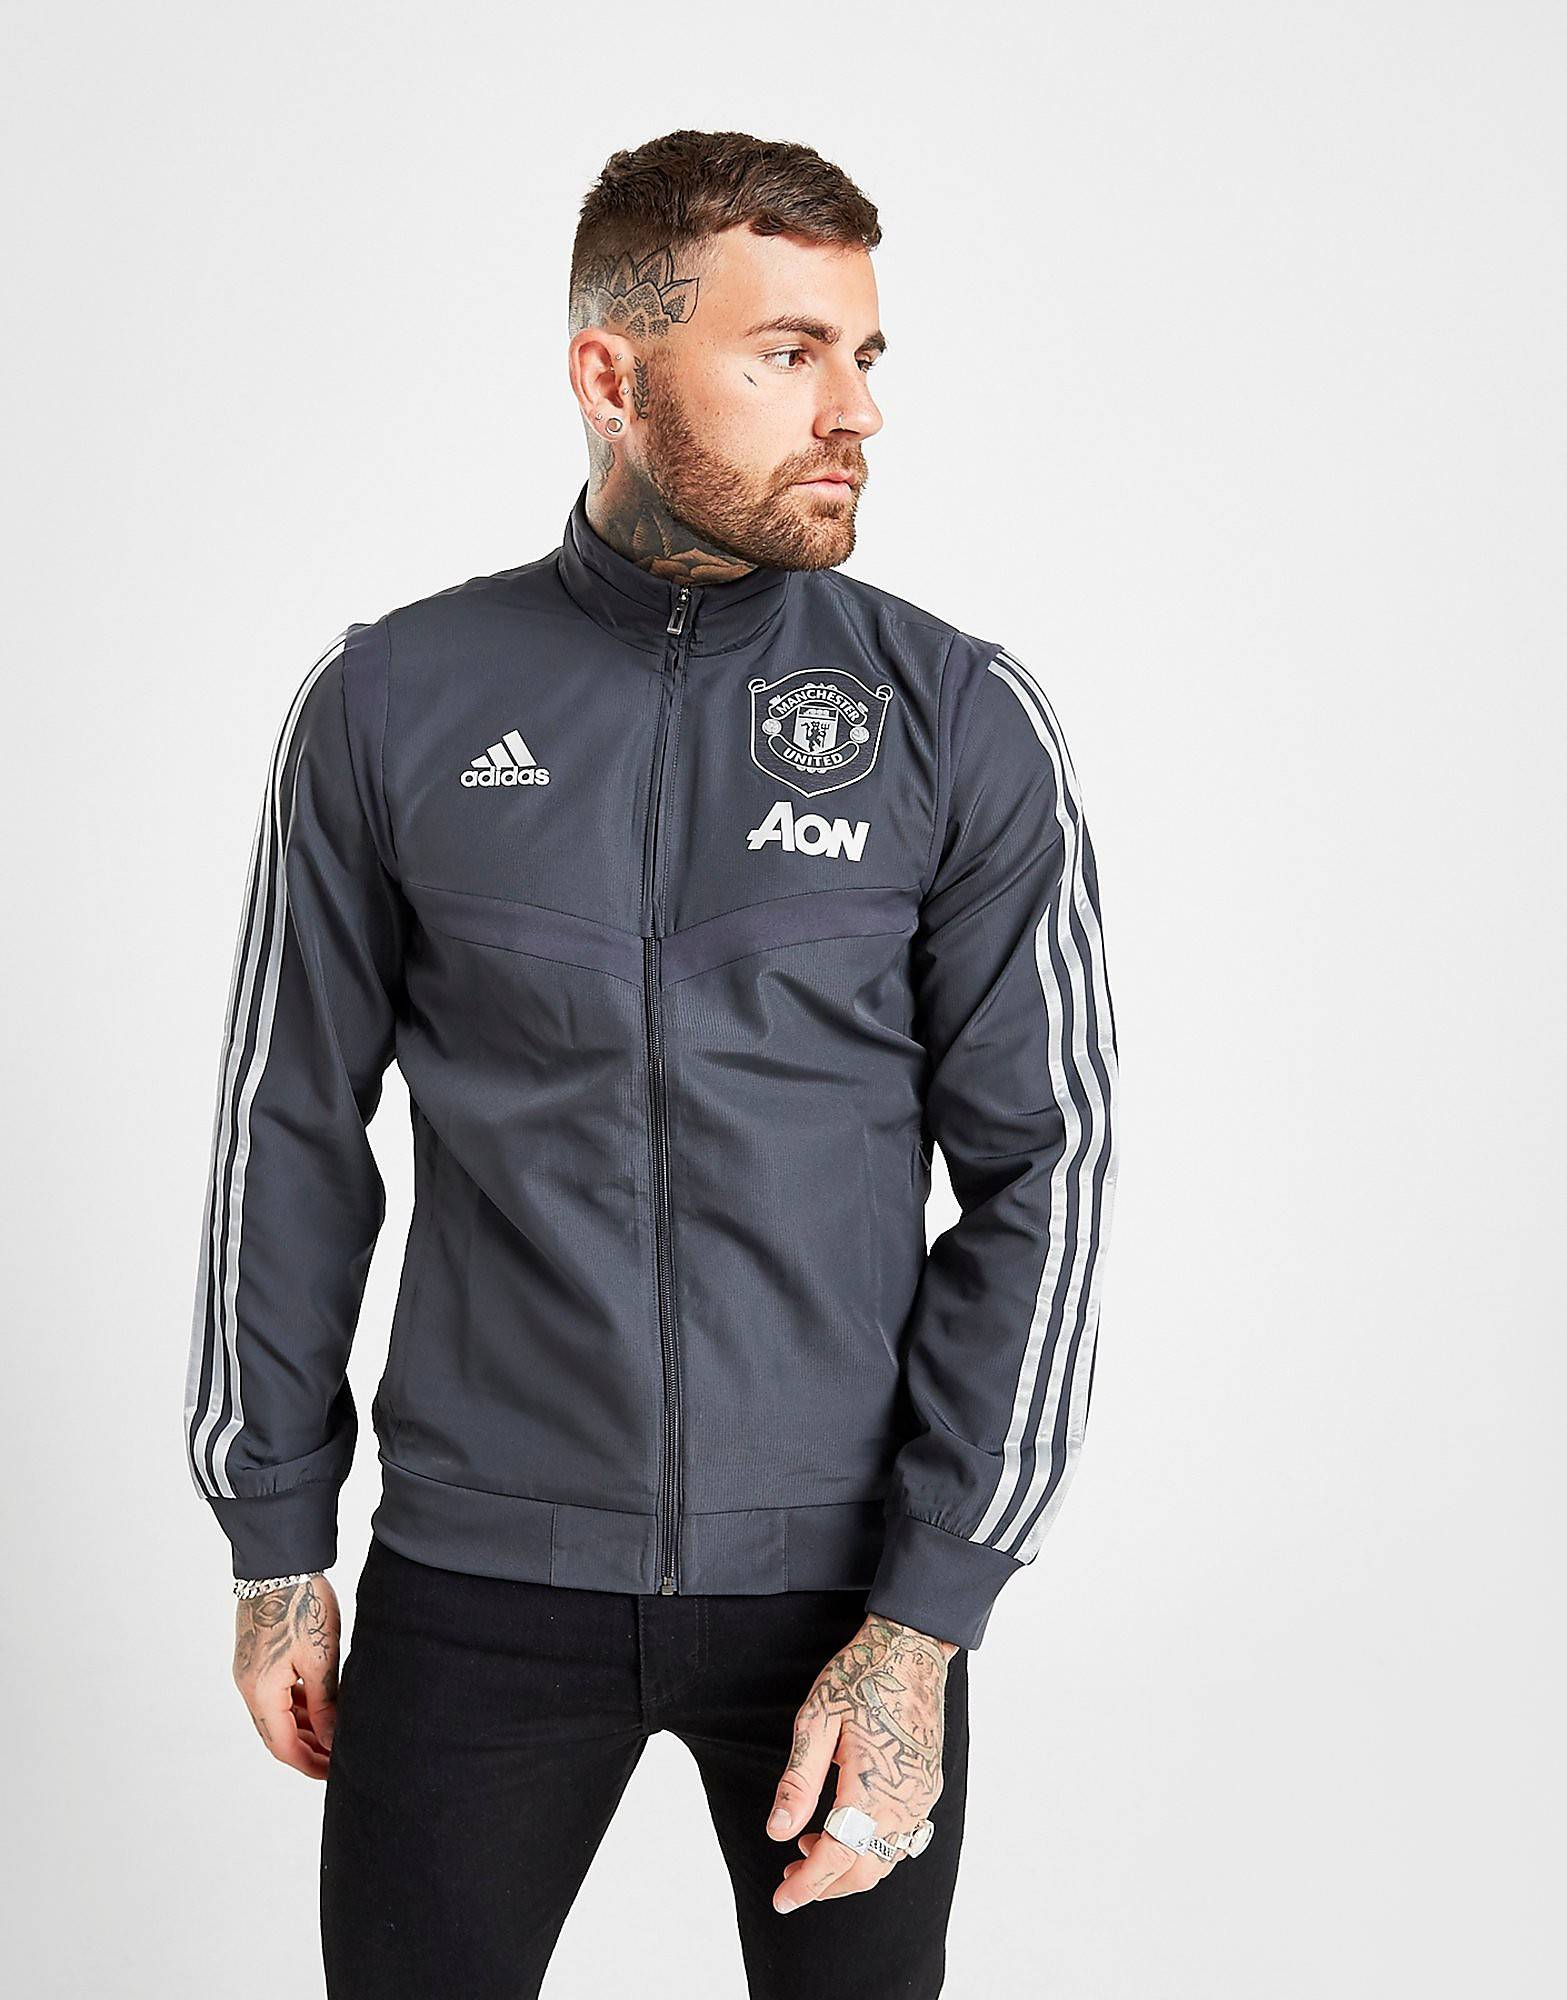 Image of Adidas Manchester United FC European Pre Match Jacket - Mens, Carbon